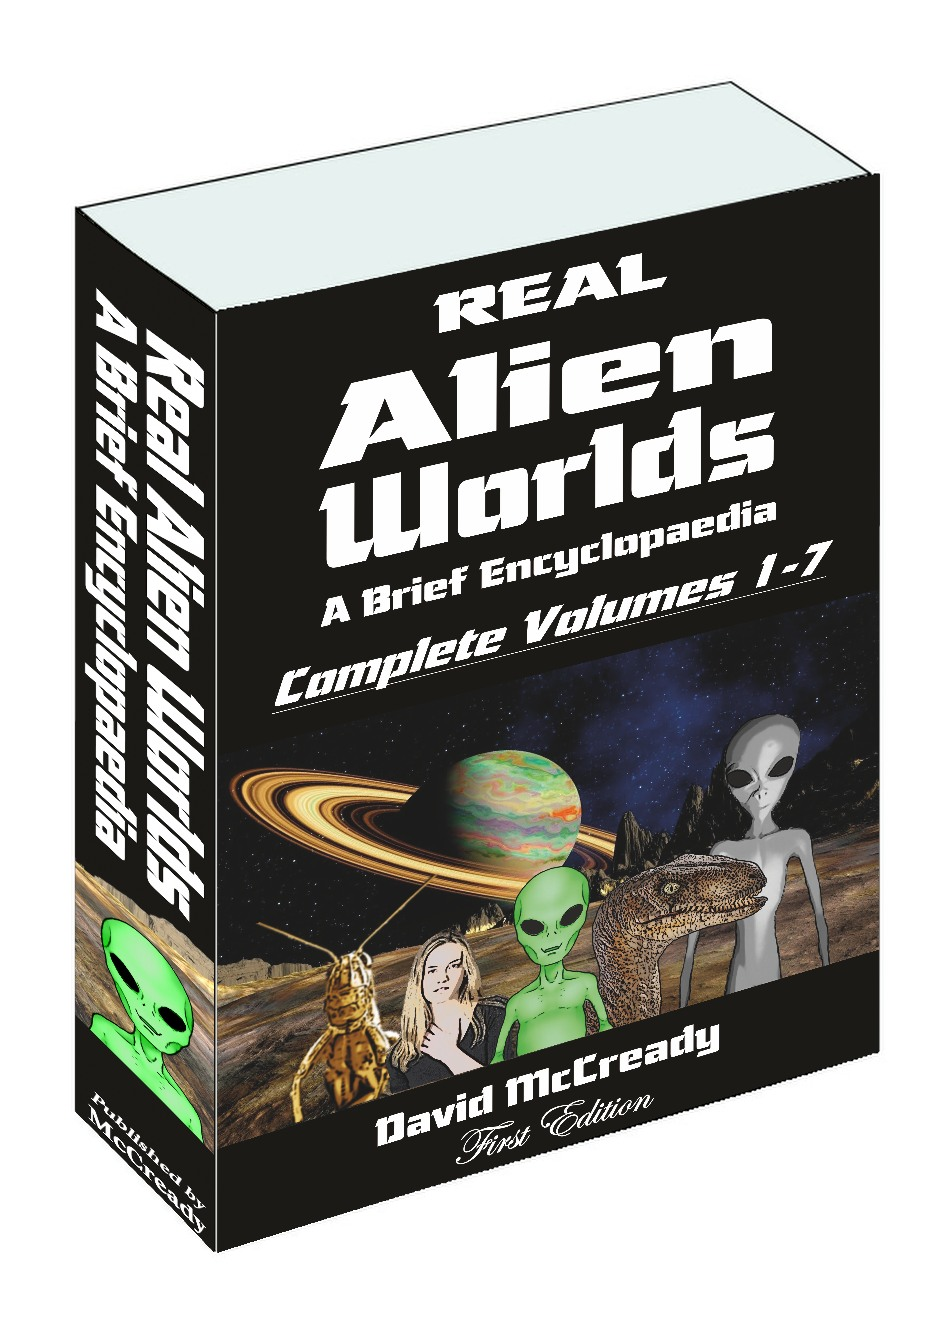 Real Alien Worlds Complete Volumes 1 to 7 - paperback